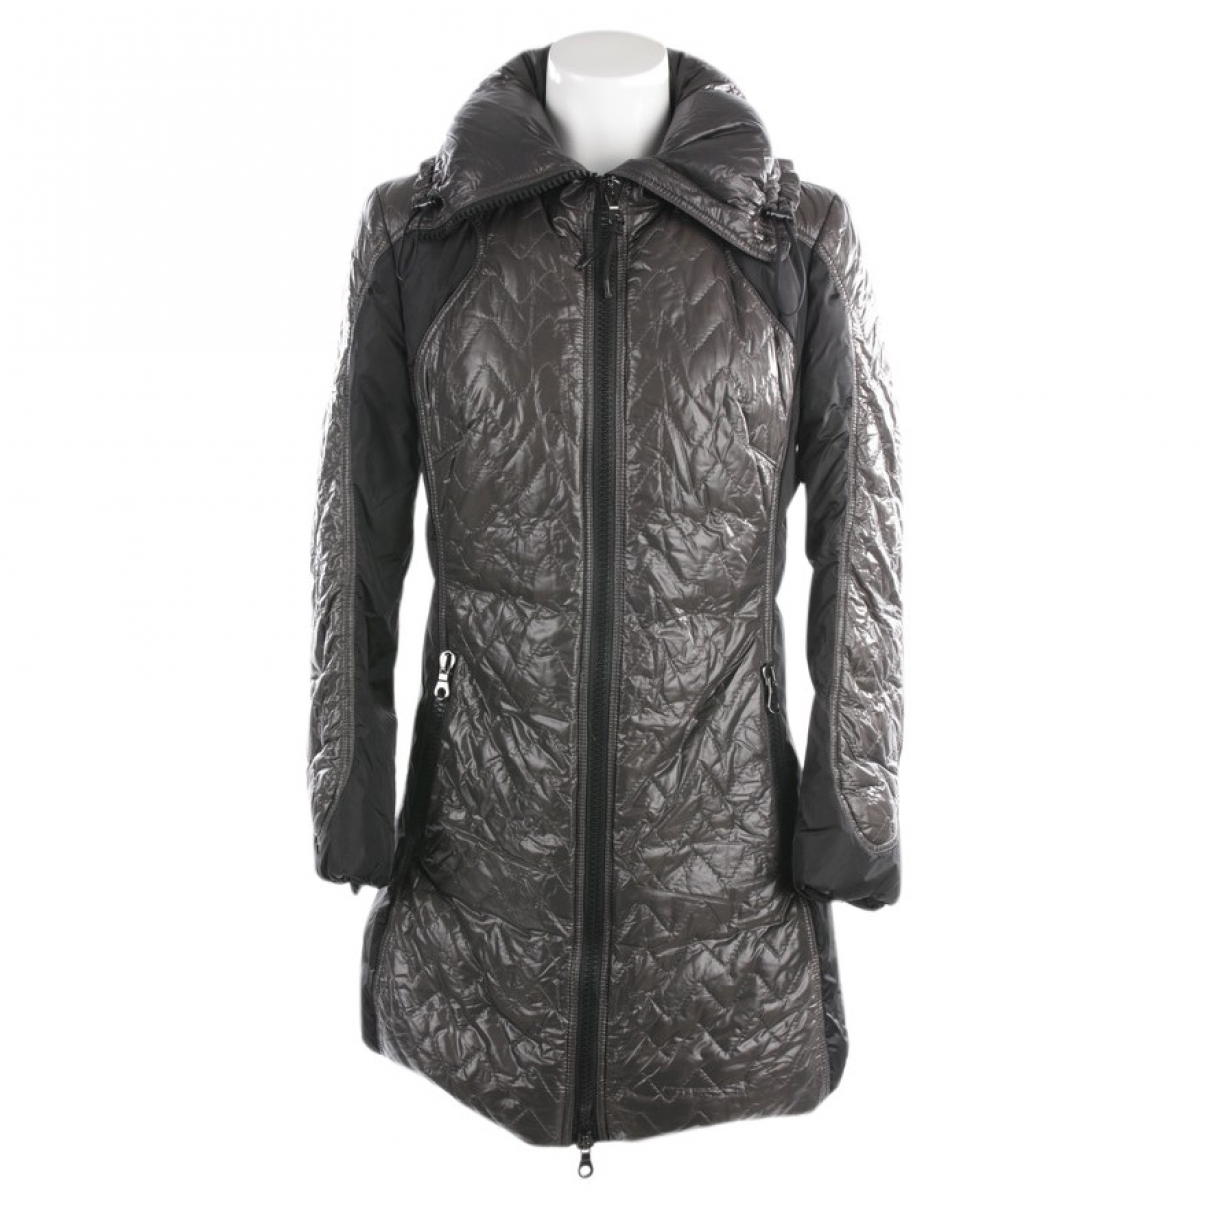 Marc Cain \N Brown jacket for Women 38 FR